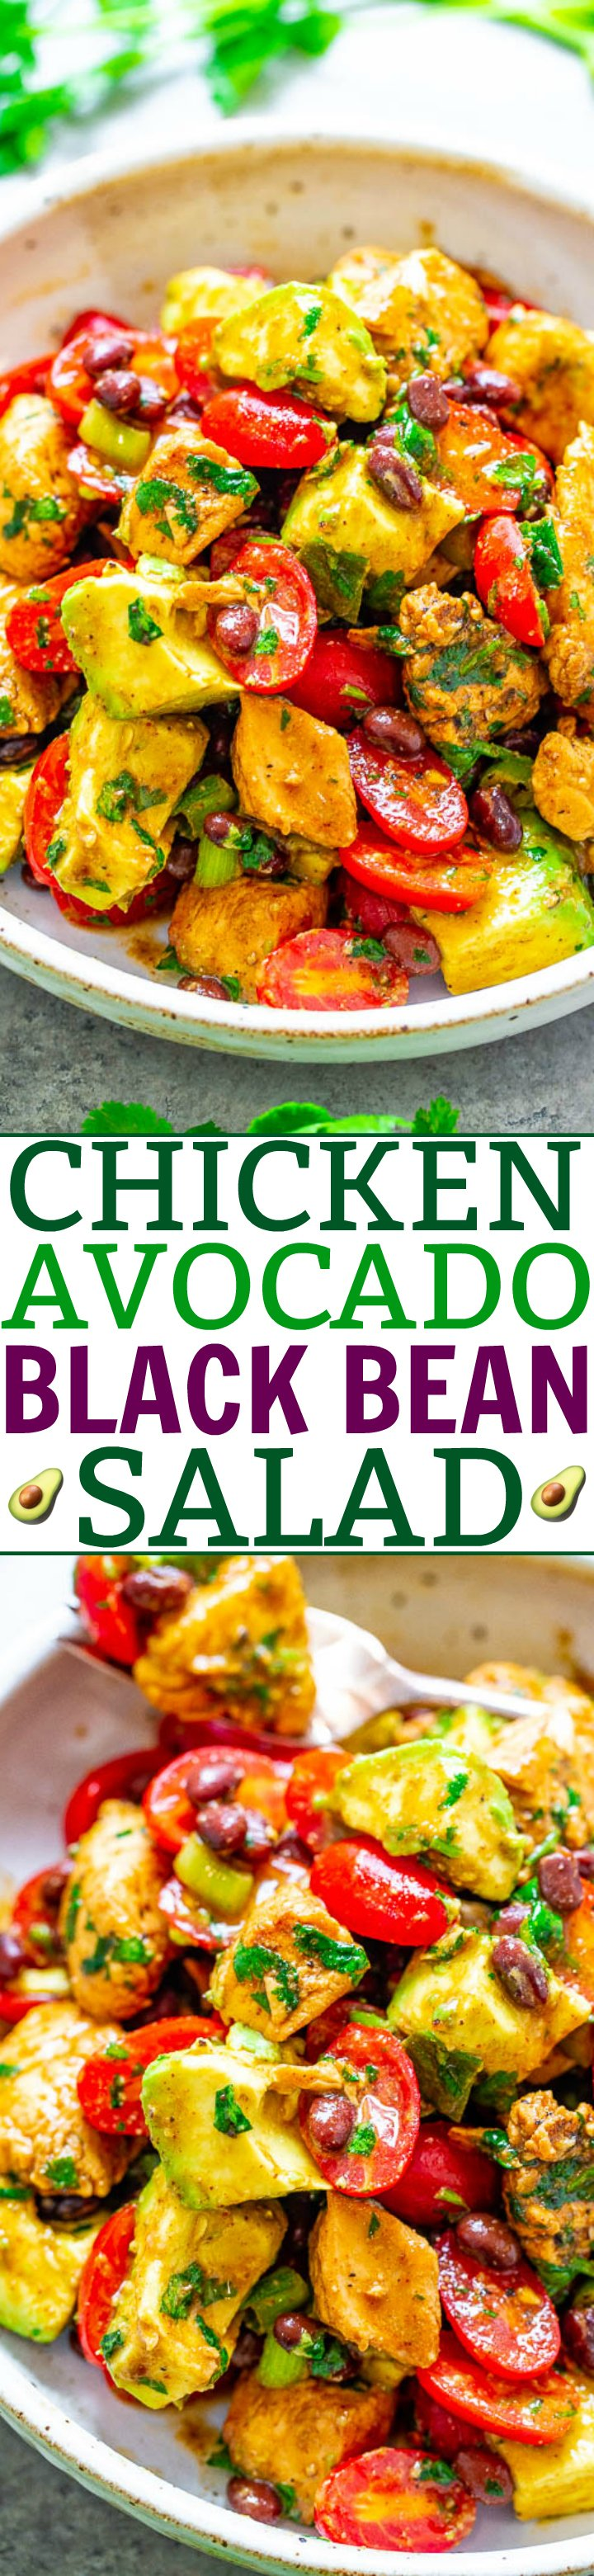 Chicken Black Bean Avocado Salad — A Mexican-inspired salad with tender chicken, black beans, creamy avocado, juicy tomatoes, cilantro, lime juice and more! EASY, ready in 20 minutes, HEALTHY, and packed with fiesta FLAVORS galore!